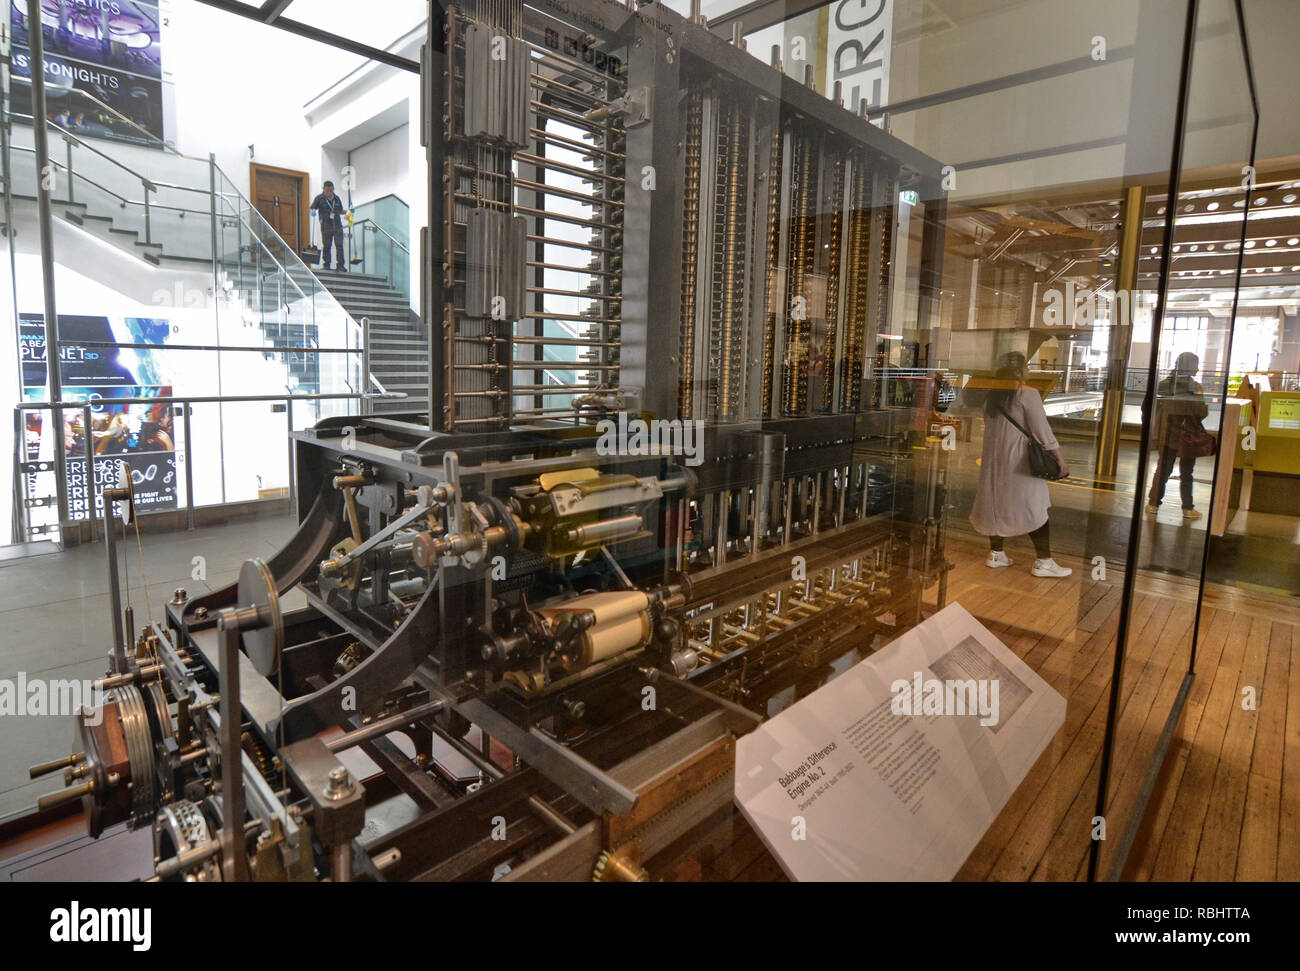 London, United Kingdom, June 2018. Babbage's machine is the progenitor of modern computers. It is a mechanical analogic computer, conserved at the Lon - Stock Image